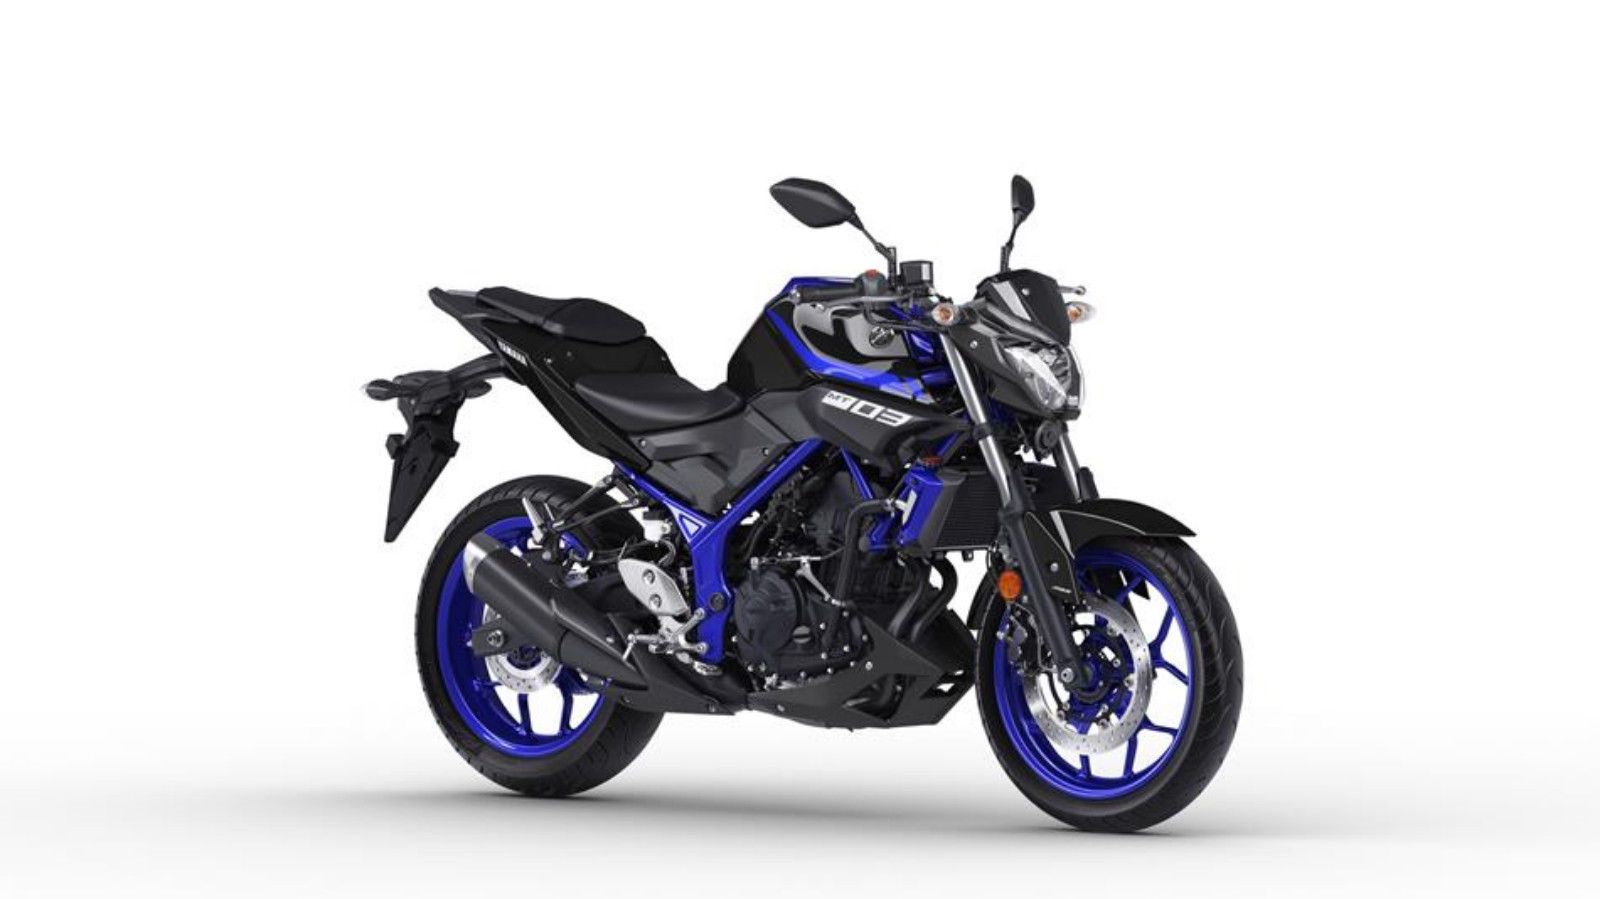 MT-09 SP ABS neues Modell 2018 SOFORT LIEFERBAR!